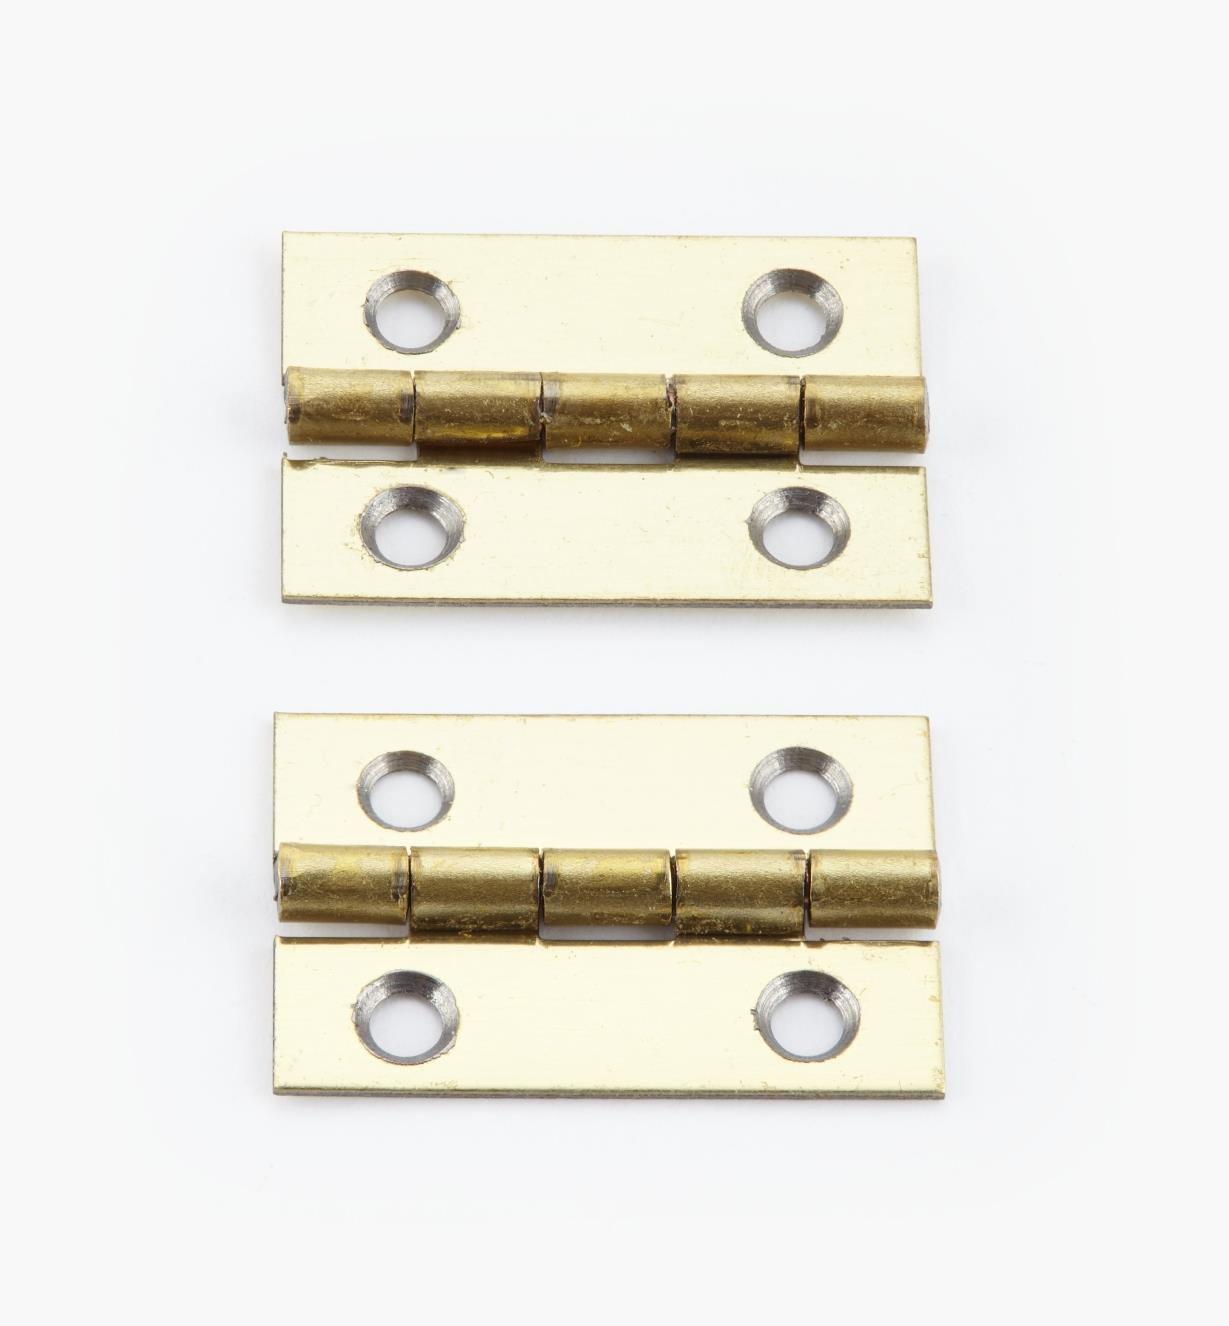 00D3012 - 25mm x 17mm Small Box Hinges, pr.